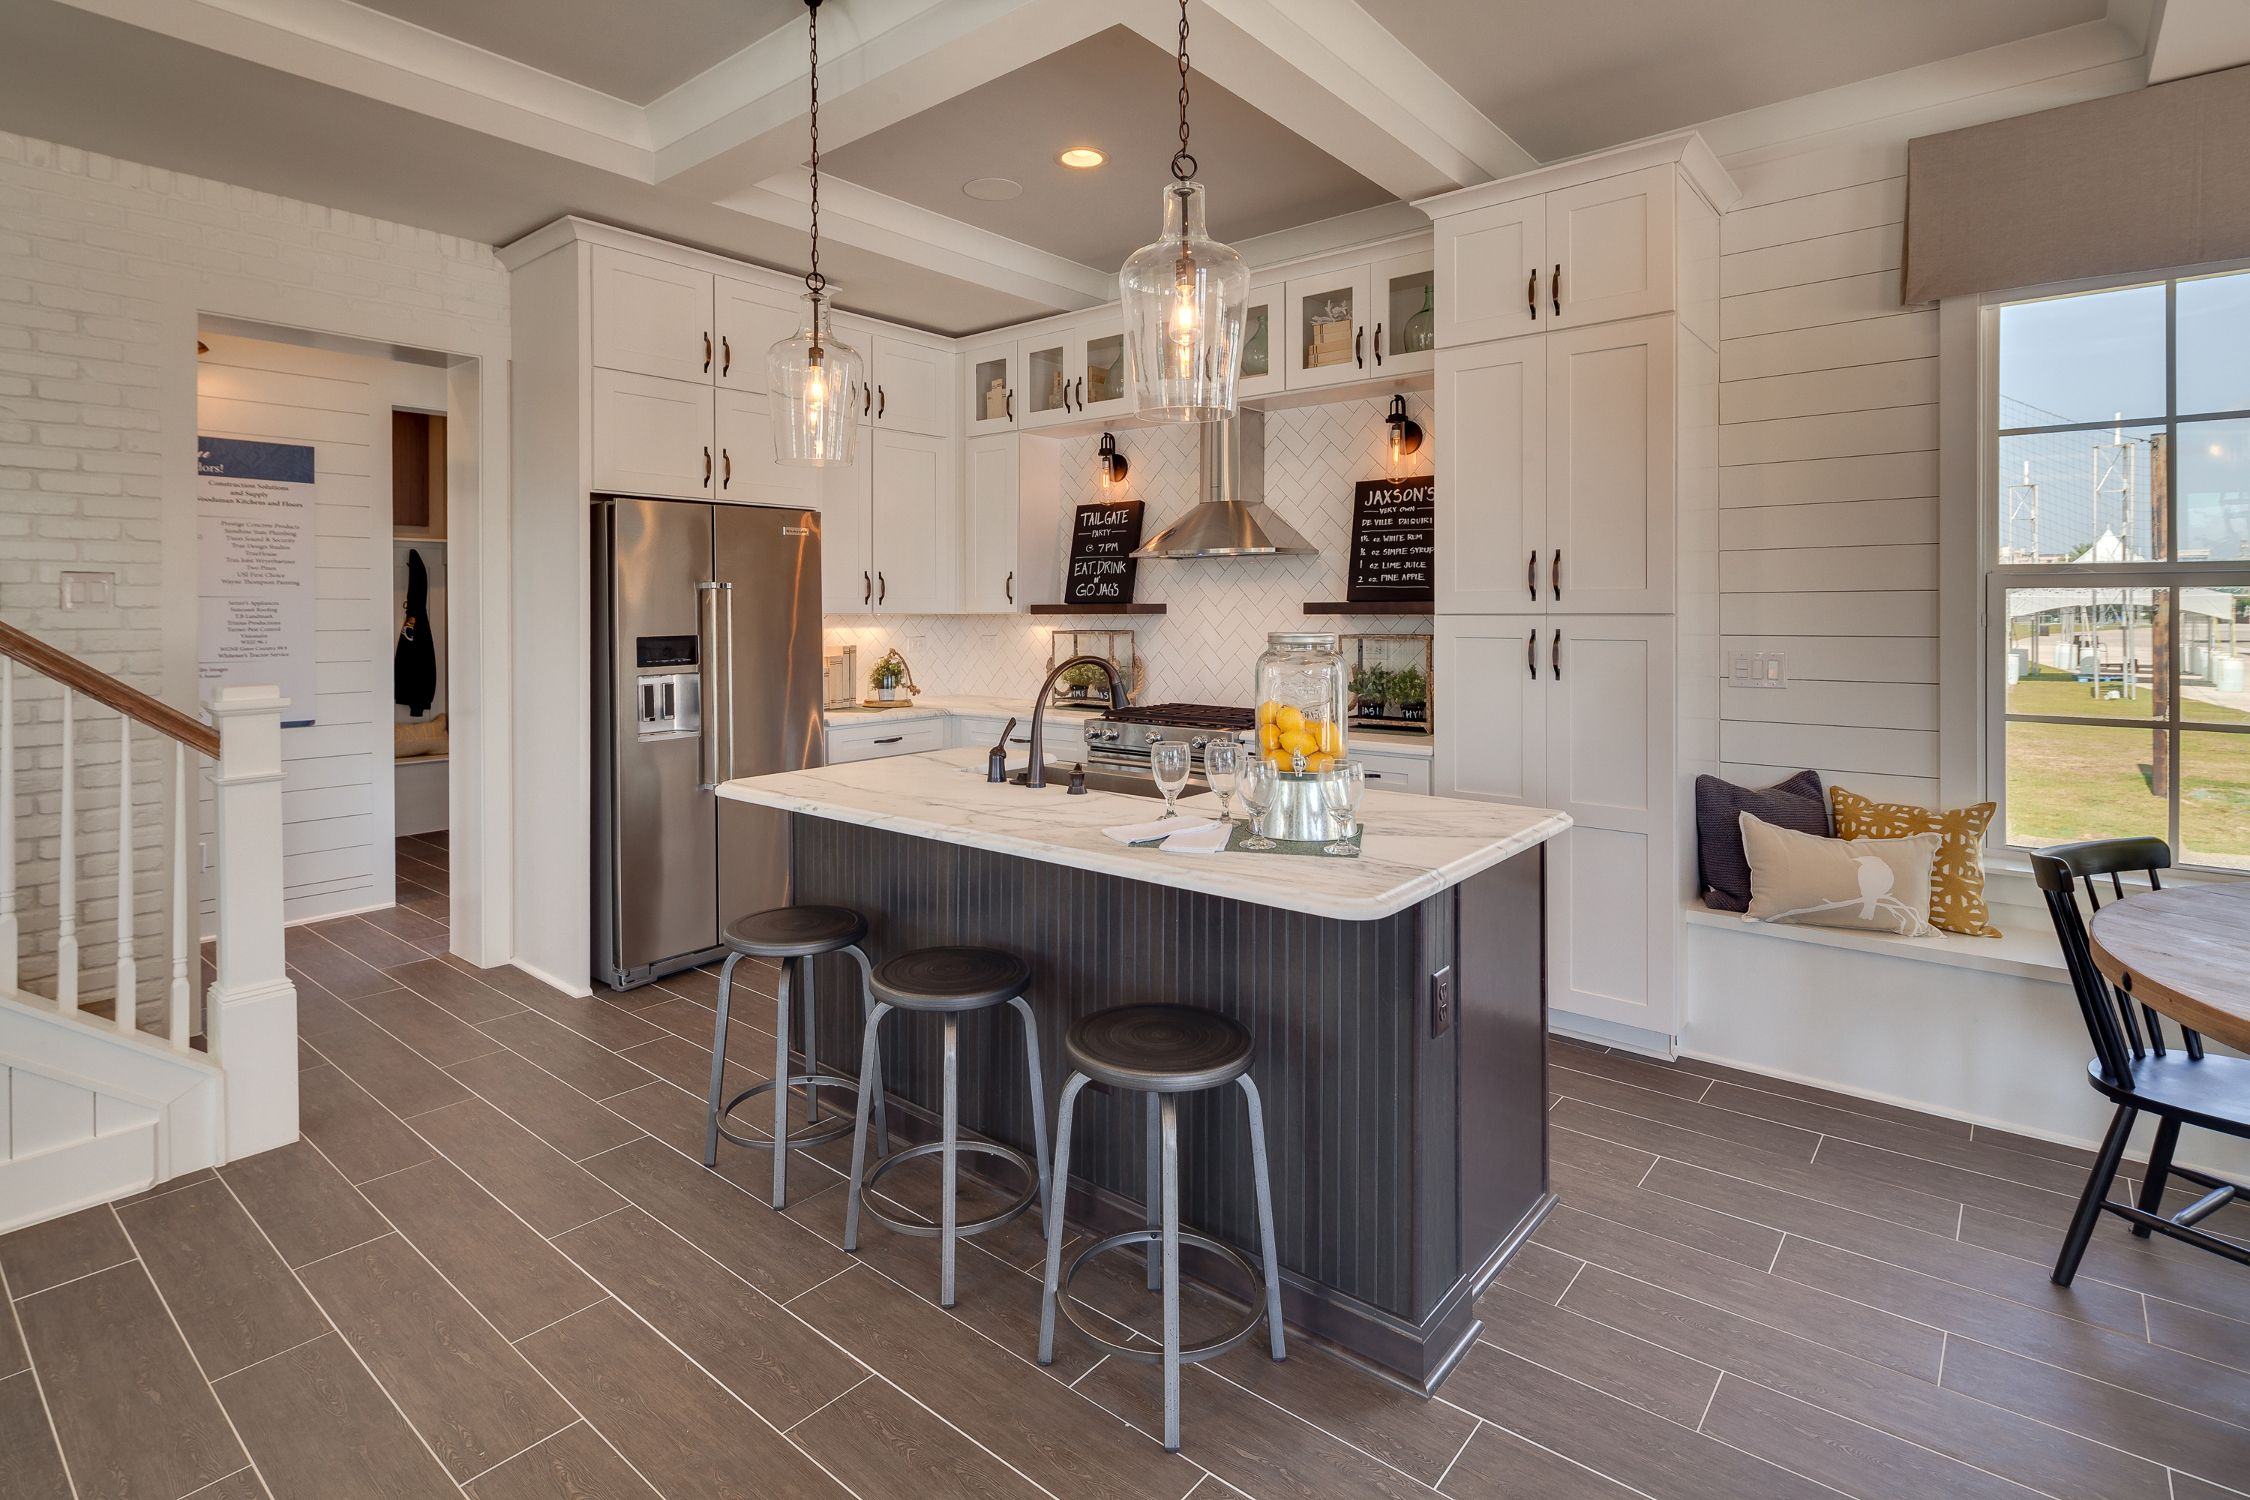 Tiletuesday Features A Fabulous Kitchen Design And Installation By